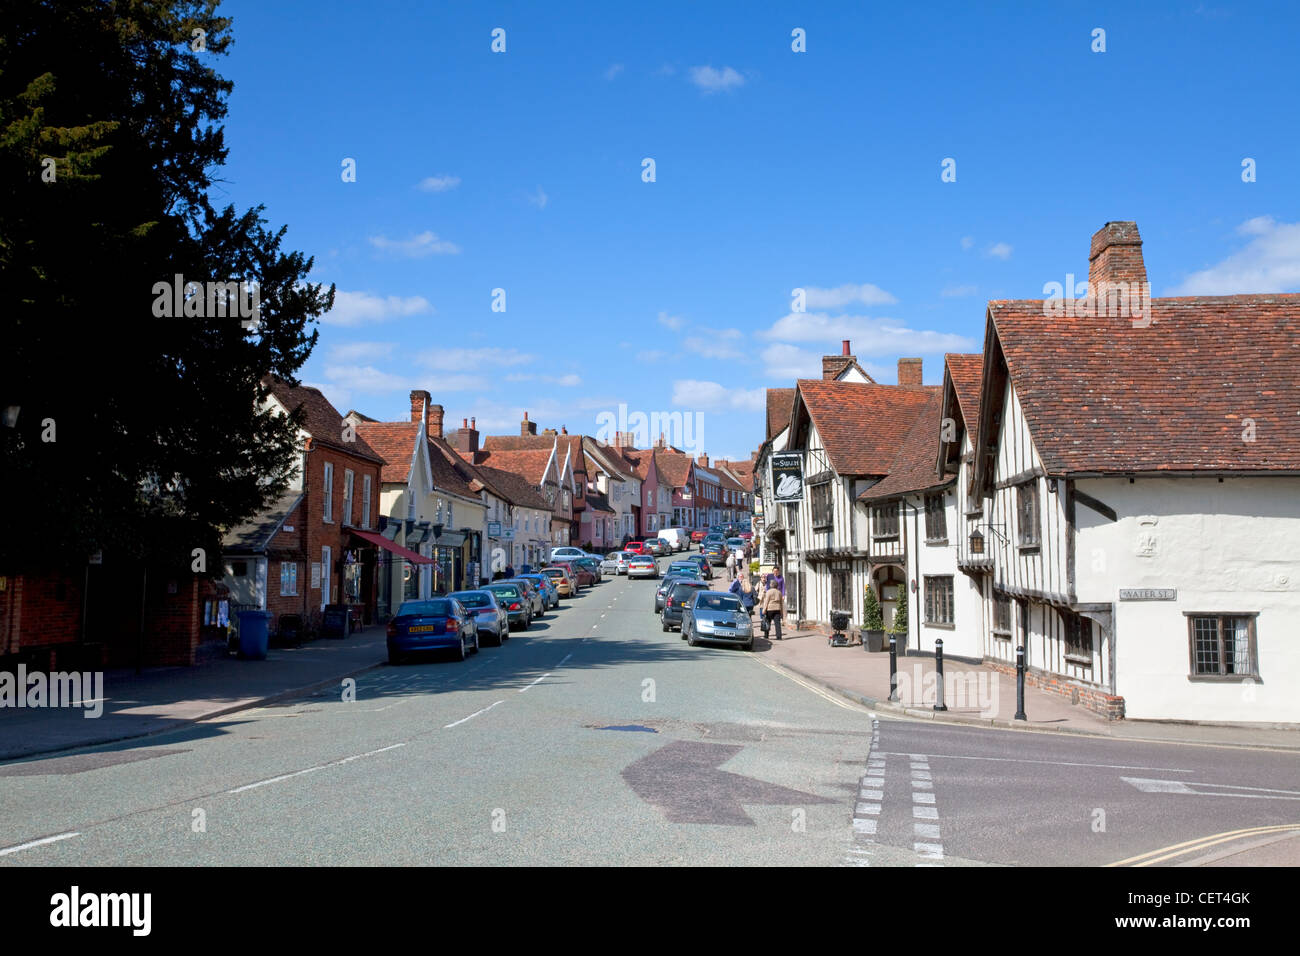 The main road running past historic half-timbered buildings in the village of Lavenham. - Stock Image